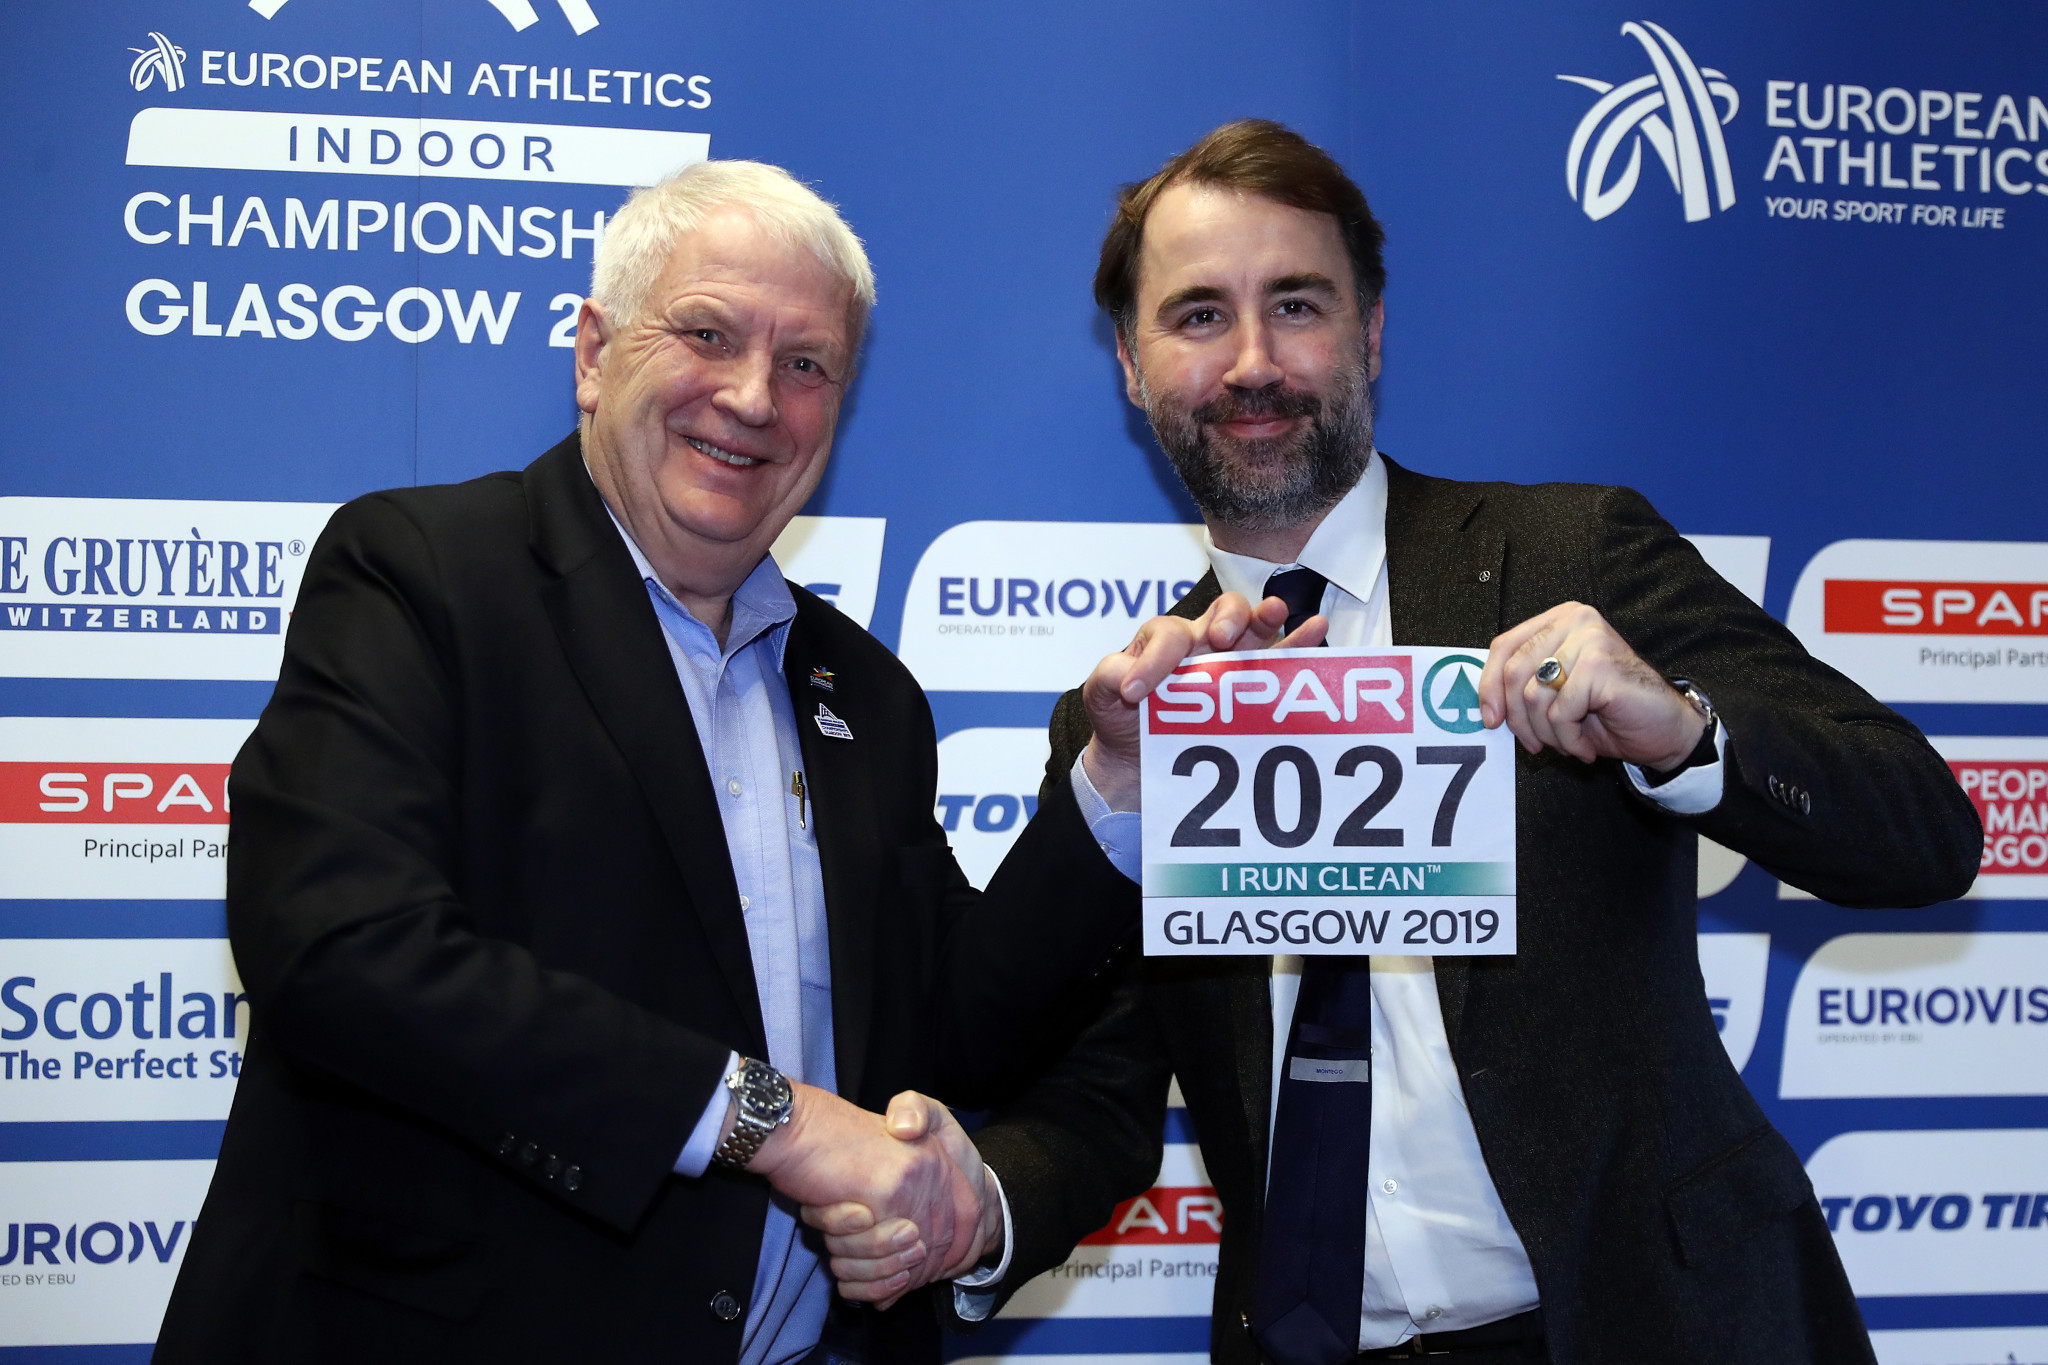 European Athletics announces eight-year extension to SPAR deal on eve of Indoor Championships in Glasgow